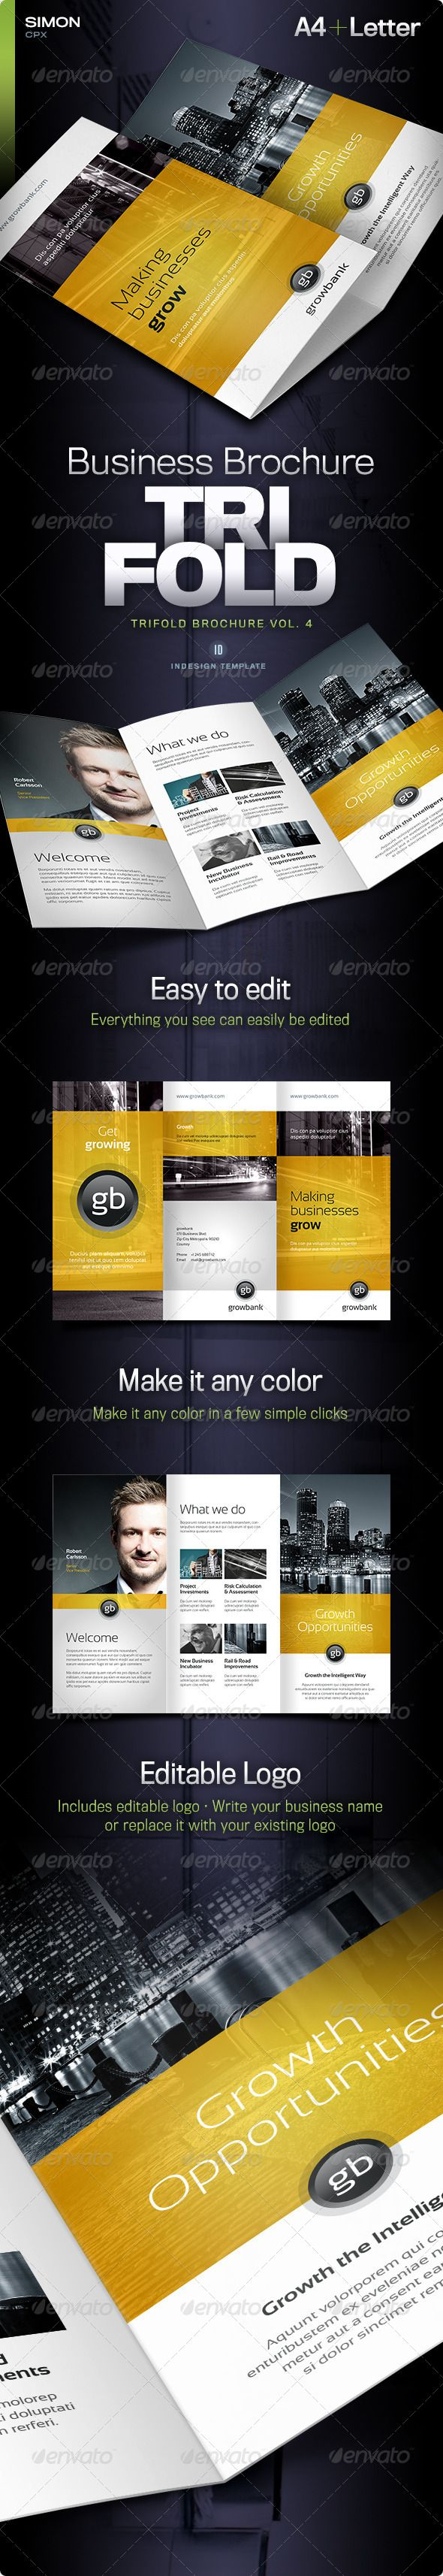 Trifold Brochure Vol. 4 - Corporate Brochures